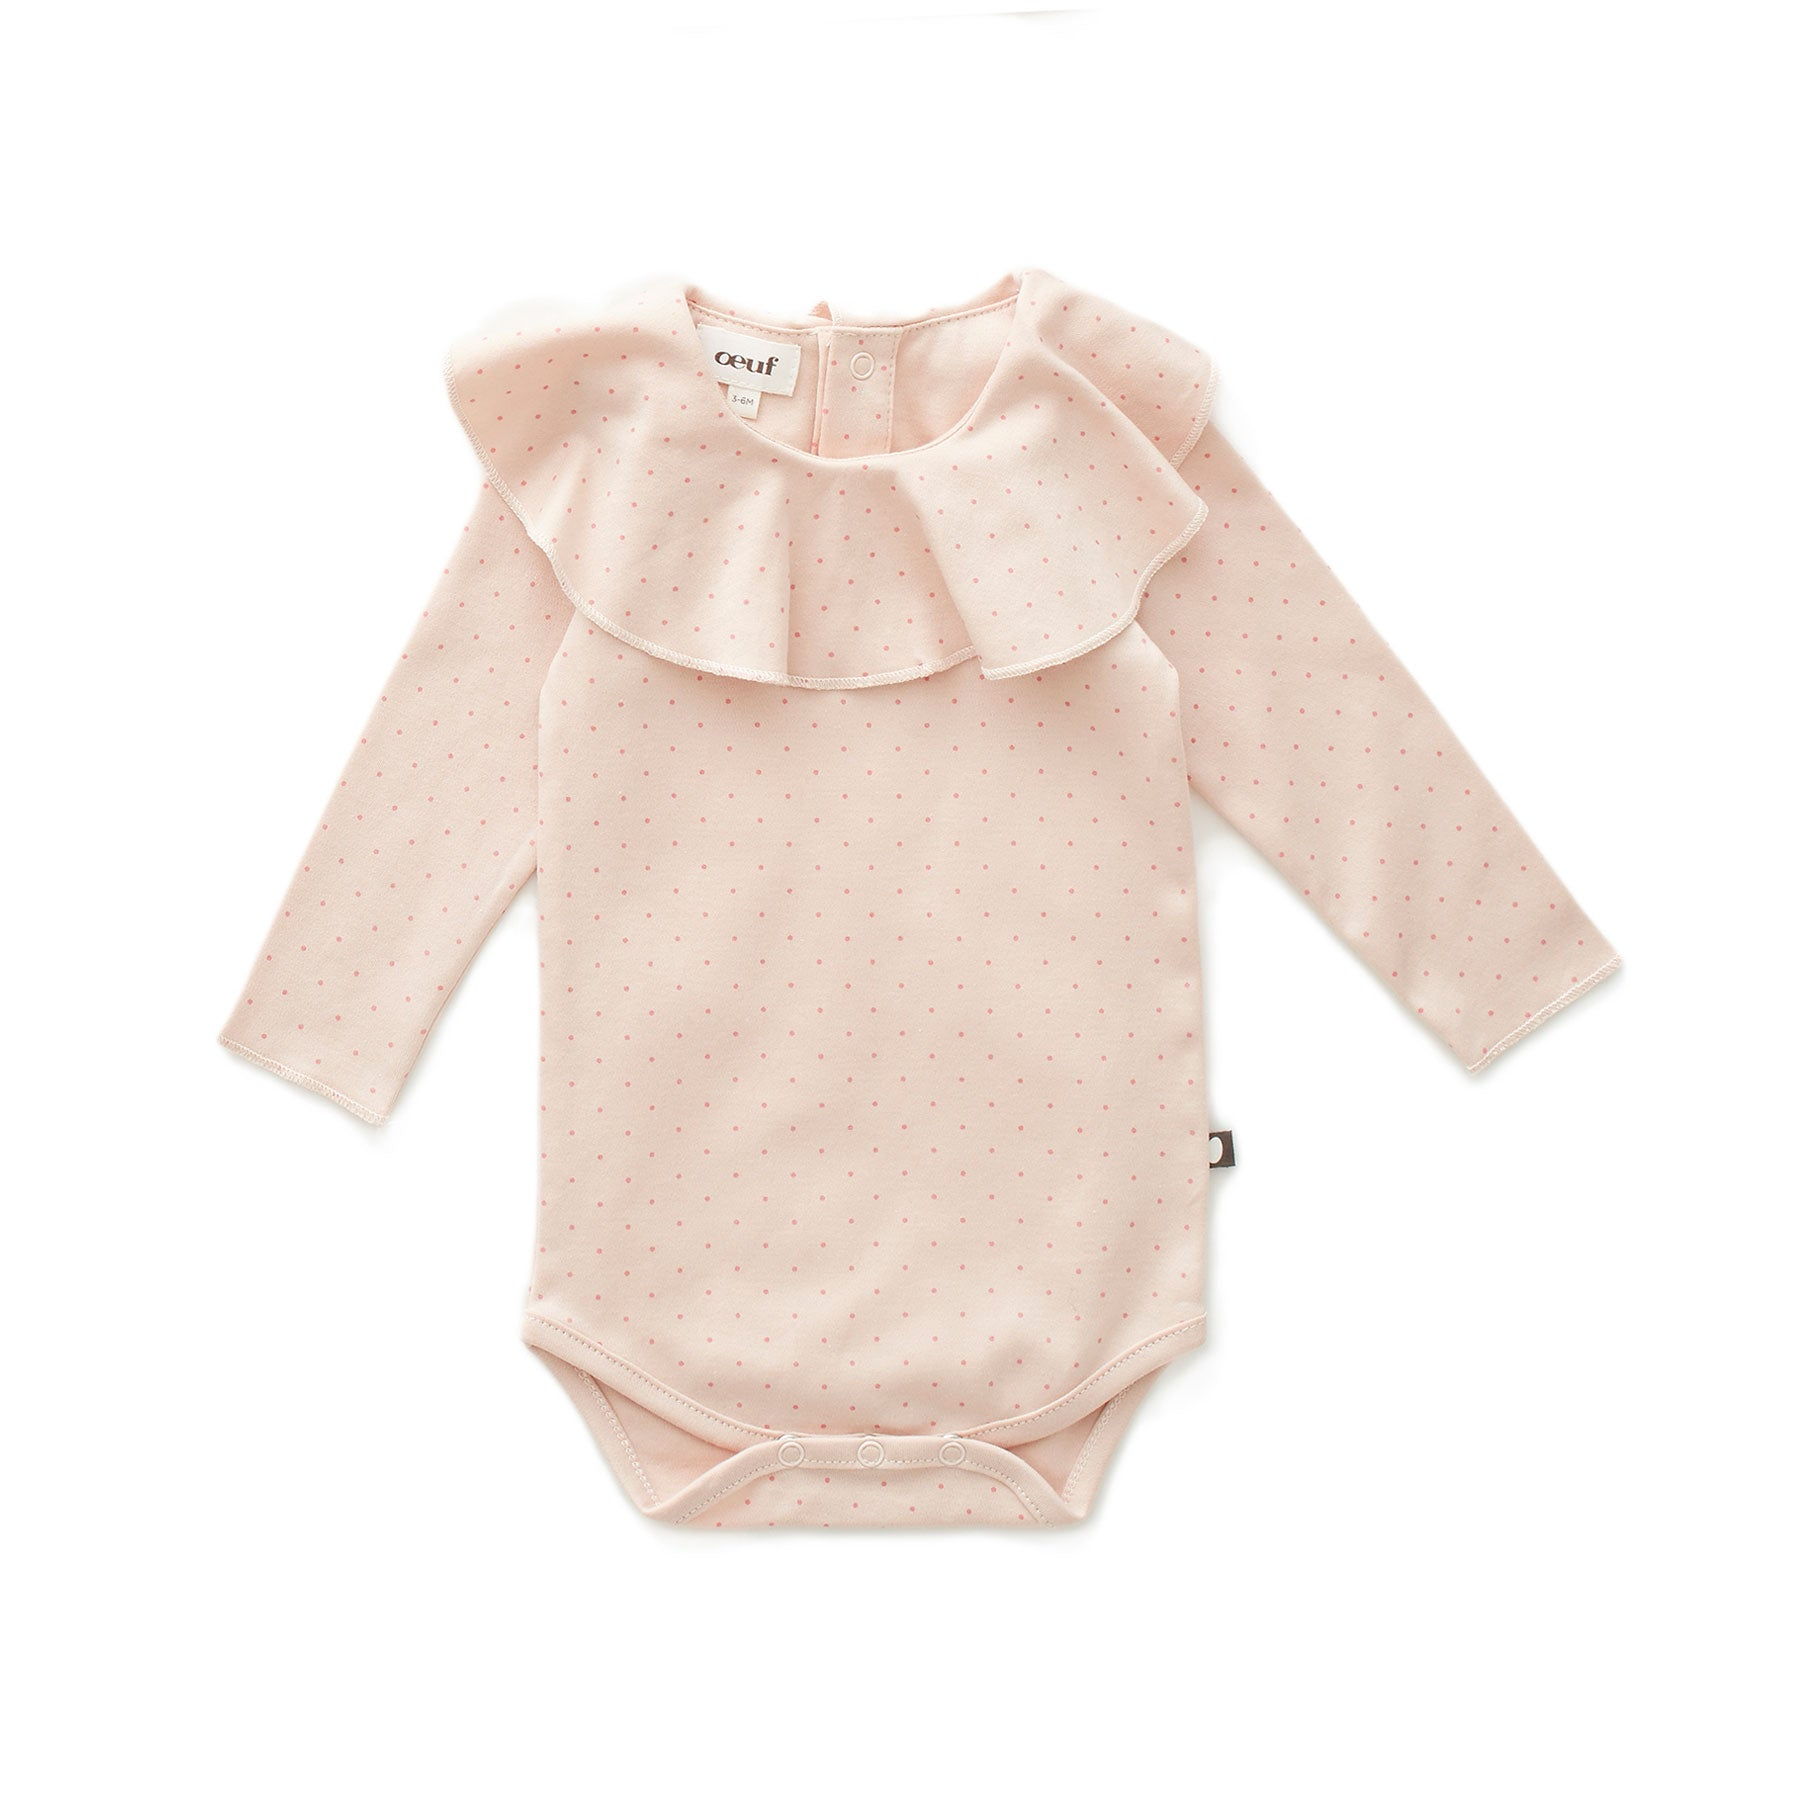 Oeuf Light Pink/Rose Dots Ruffle Collar Onesie